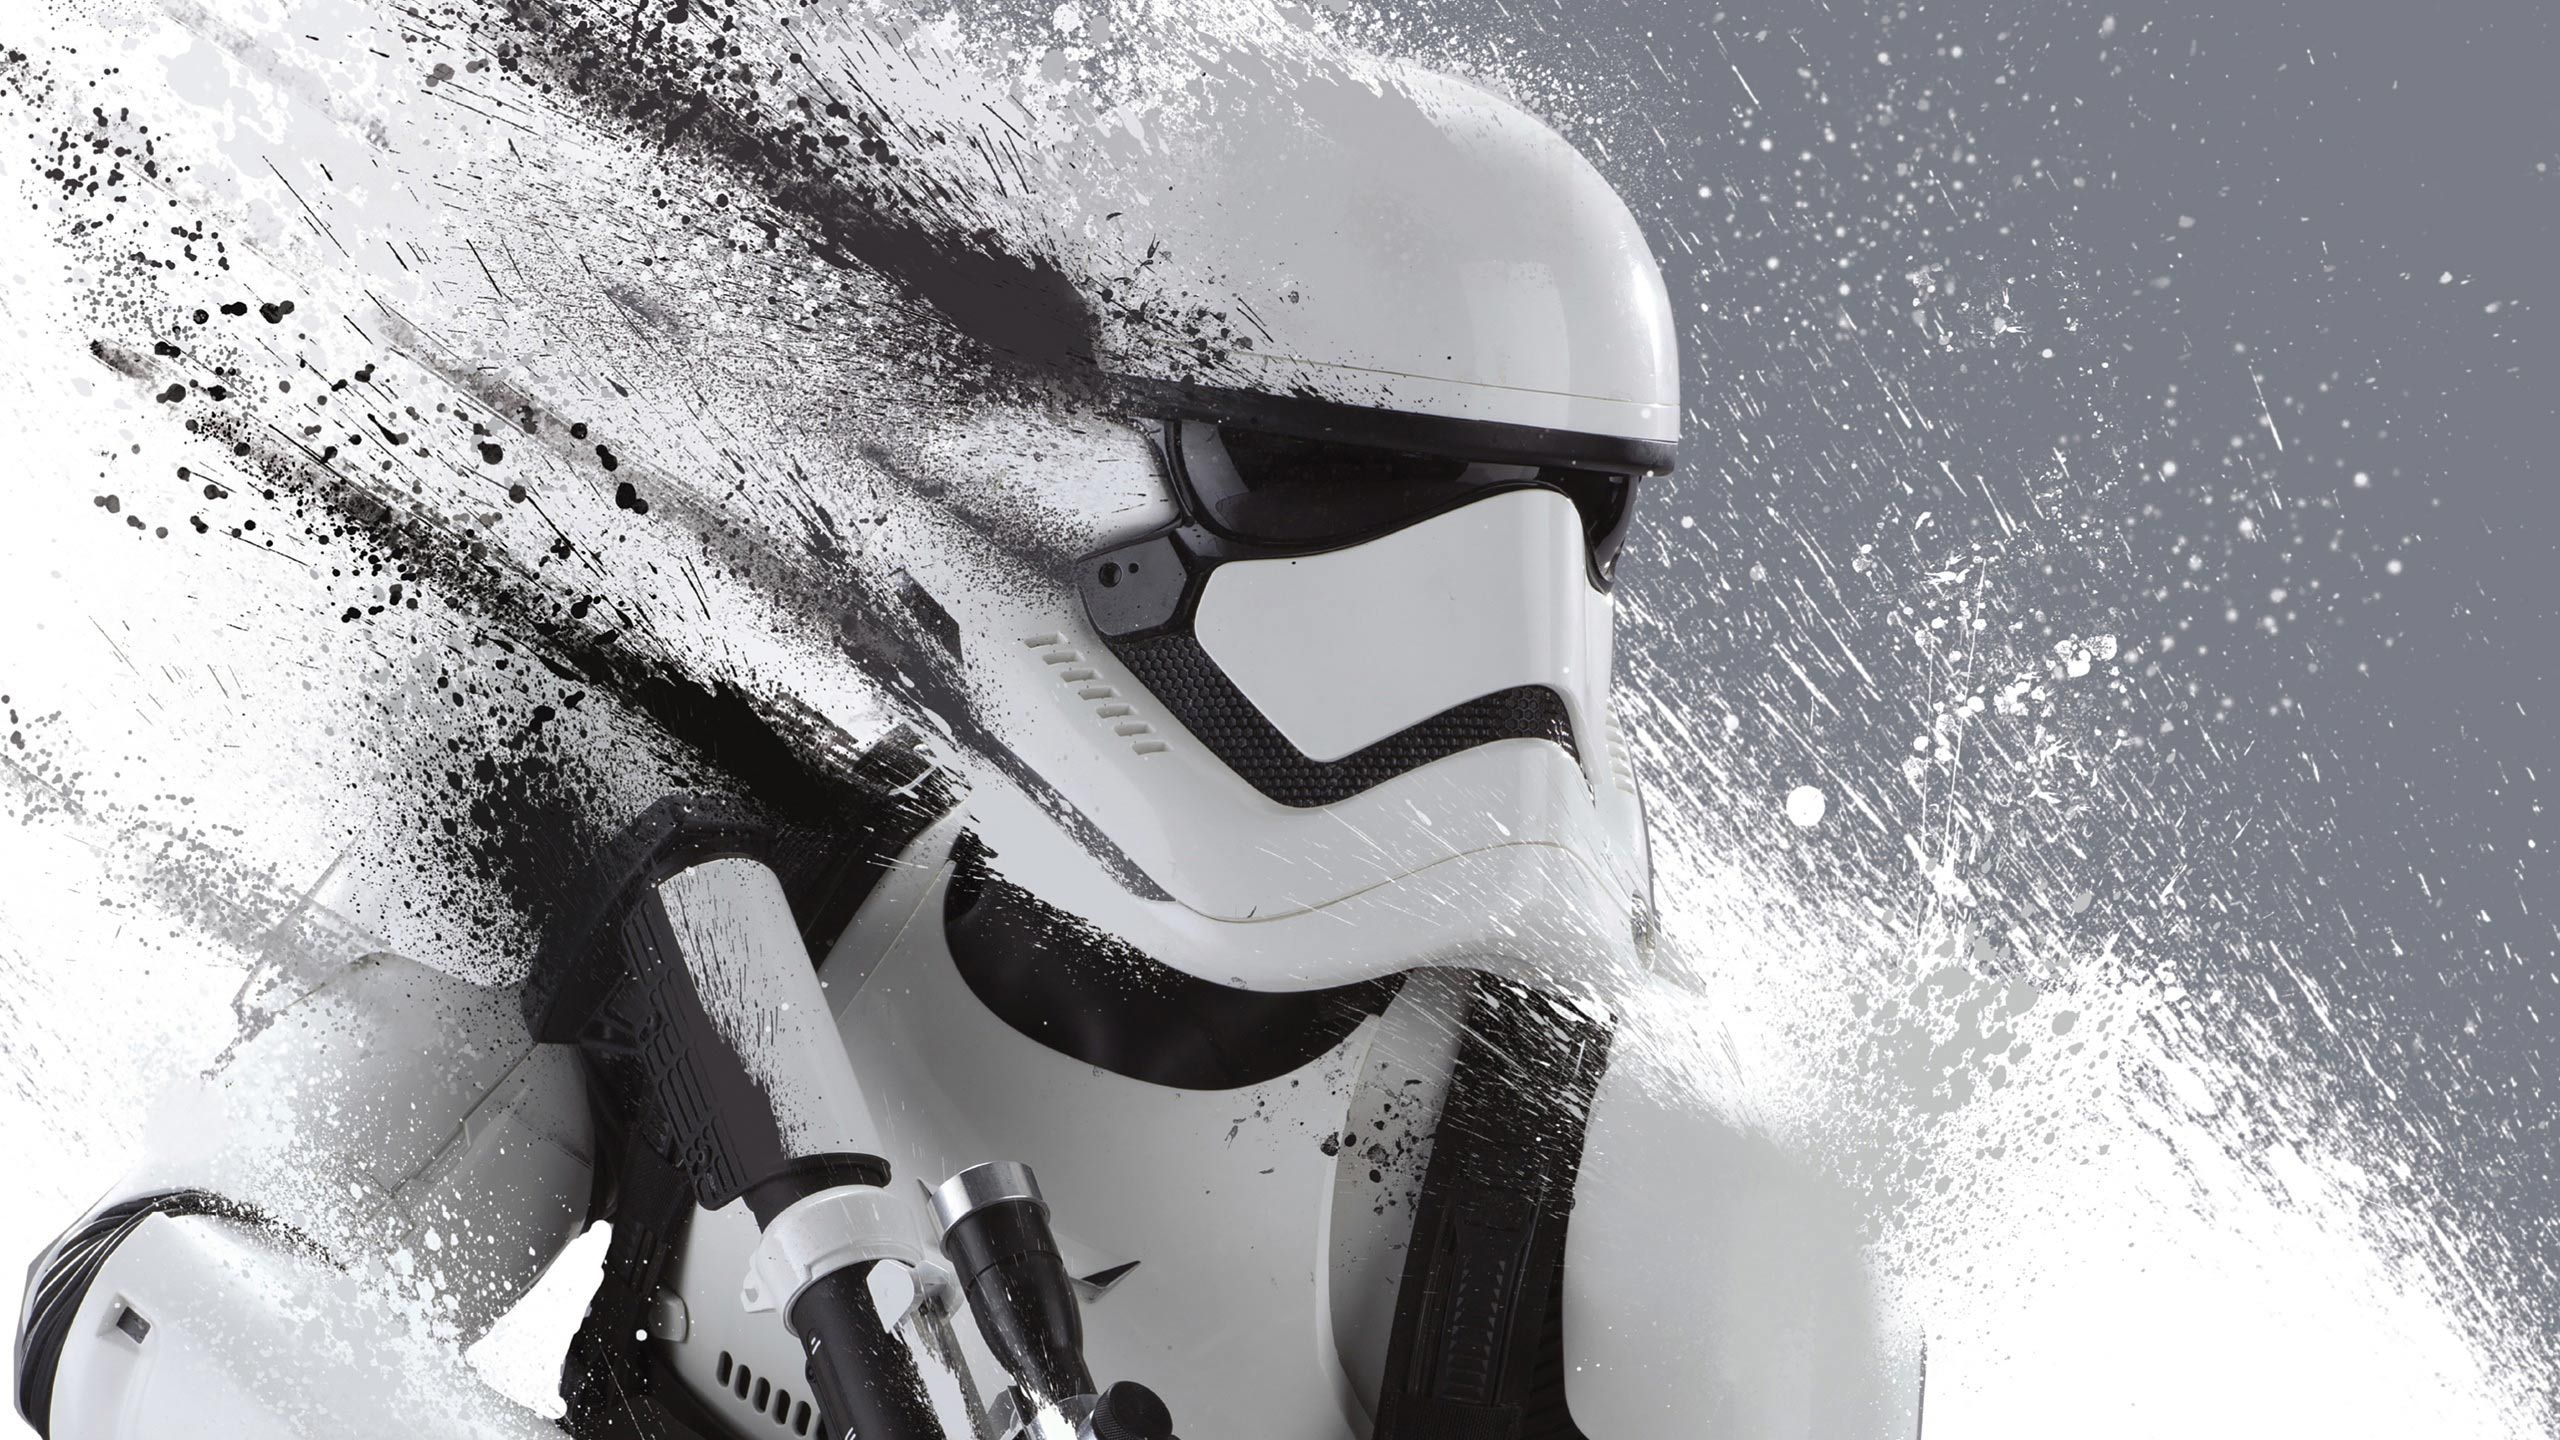 Stormtrooper Star Wars Wallpapers Free Computer Desktop Wallpaper Star Wars Wallpaper Background Hd Wallpaper Star Wars Stormtrooper